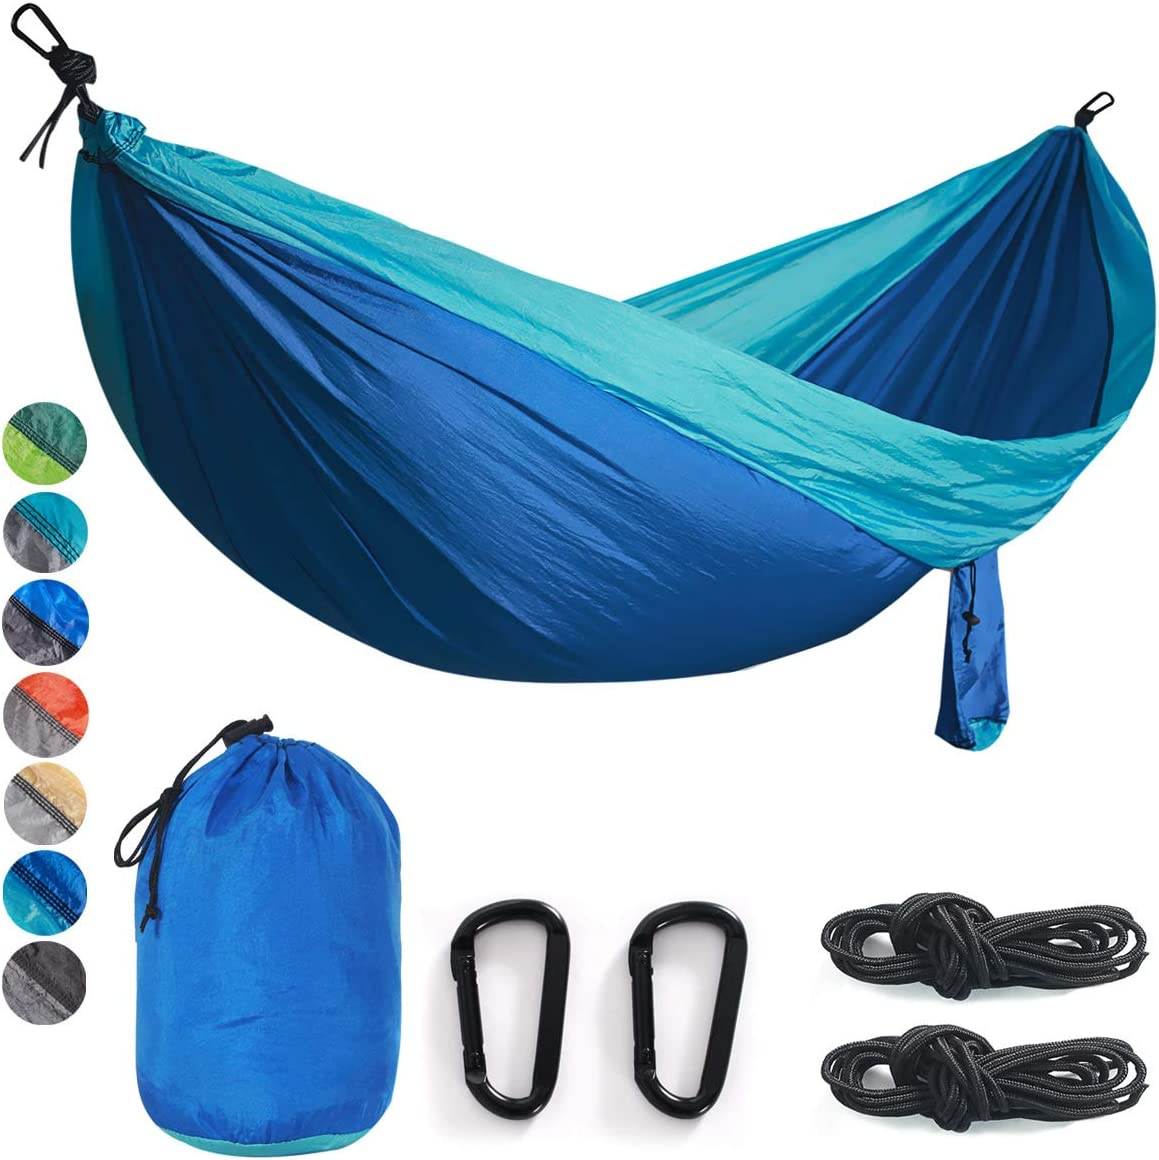 Double Single Camping Hammock Nylon Portable Parachute Lightweight for Backyard, Hiking, Beach